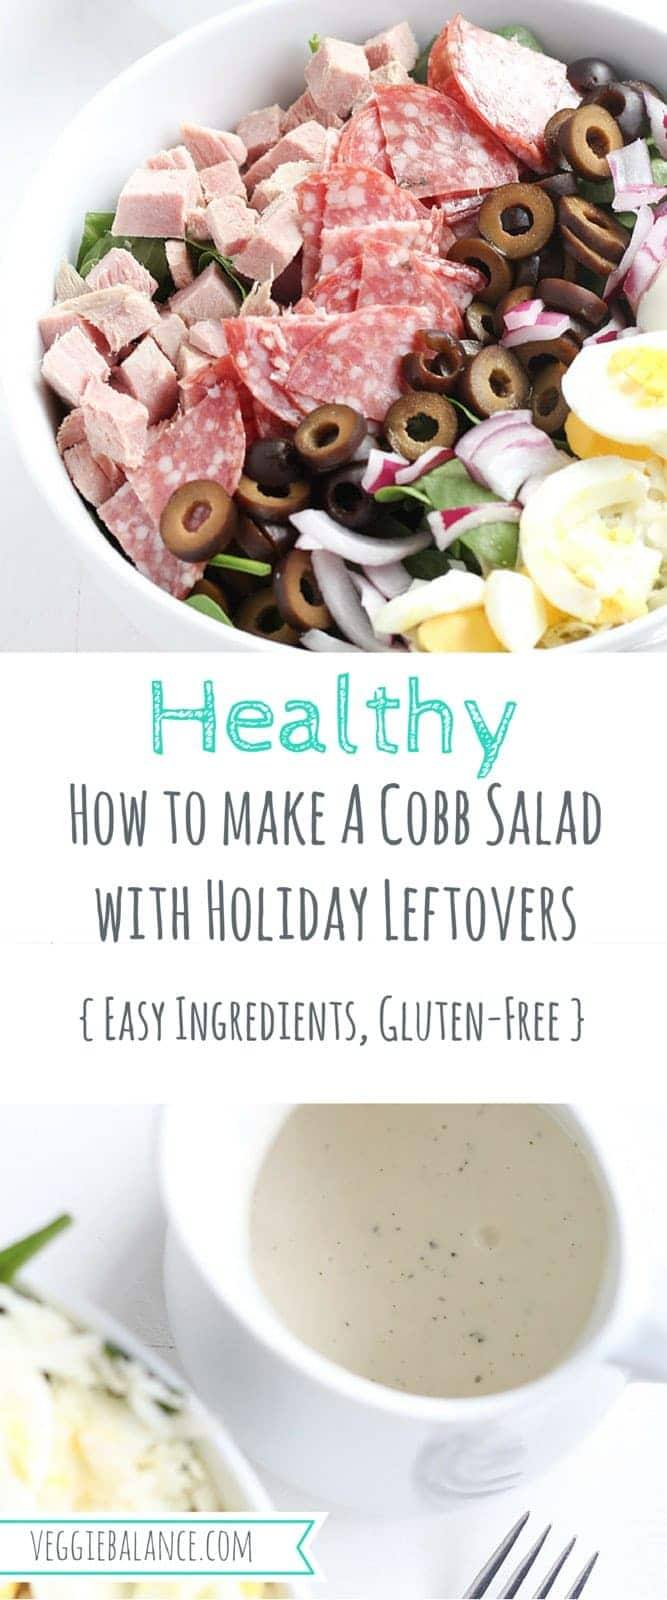 How to Make Cobb Salad with Holiday Leftovers -Veggiebalance.com